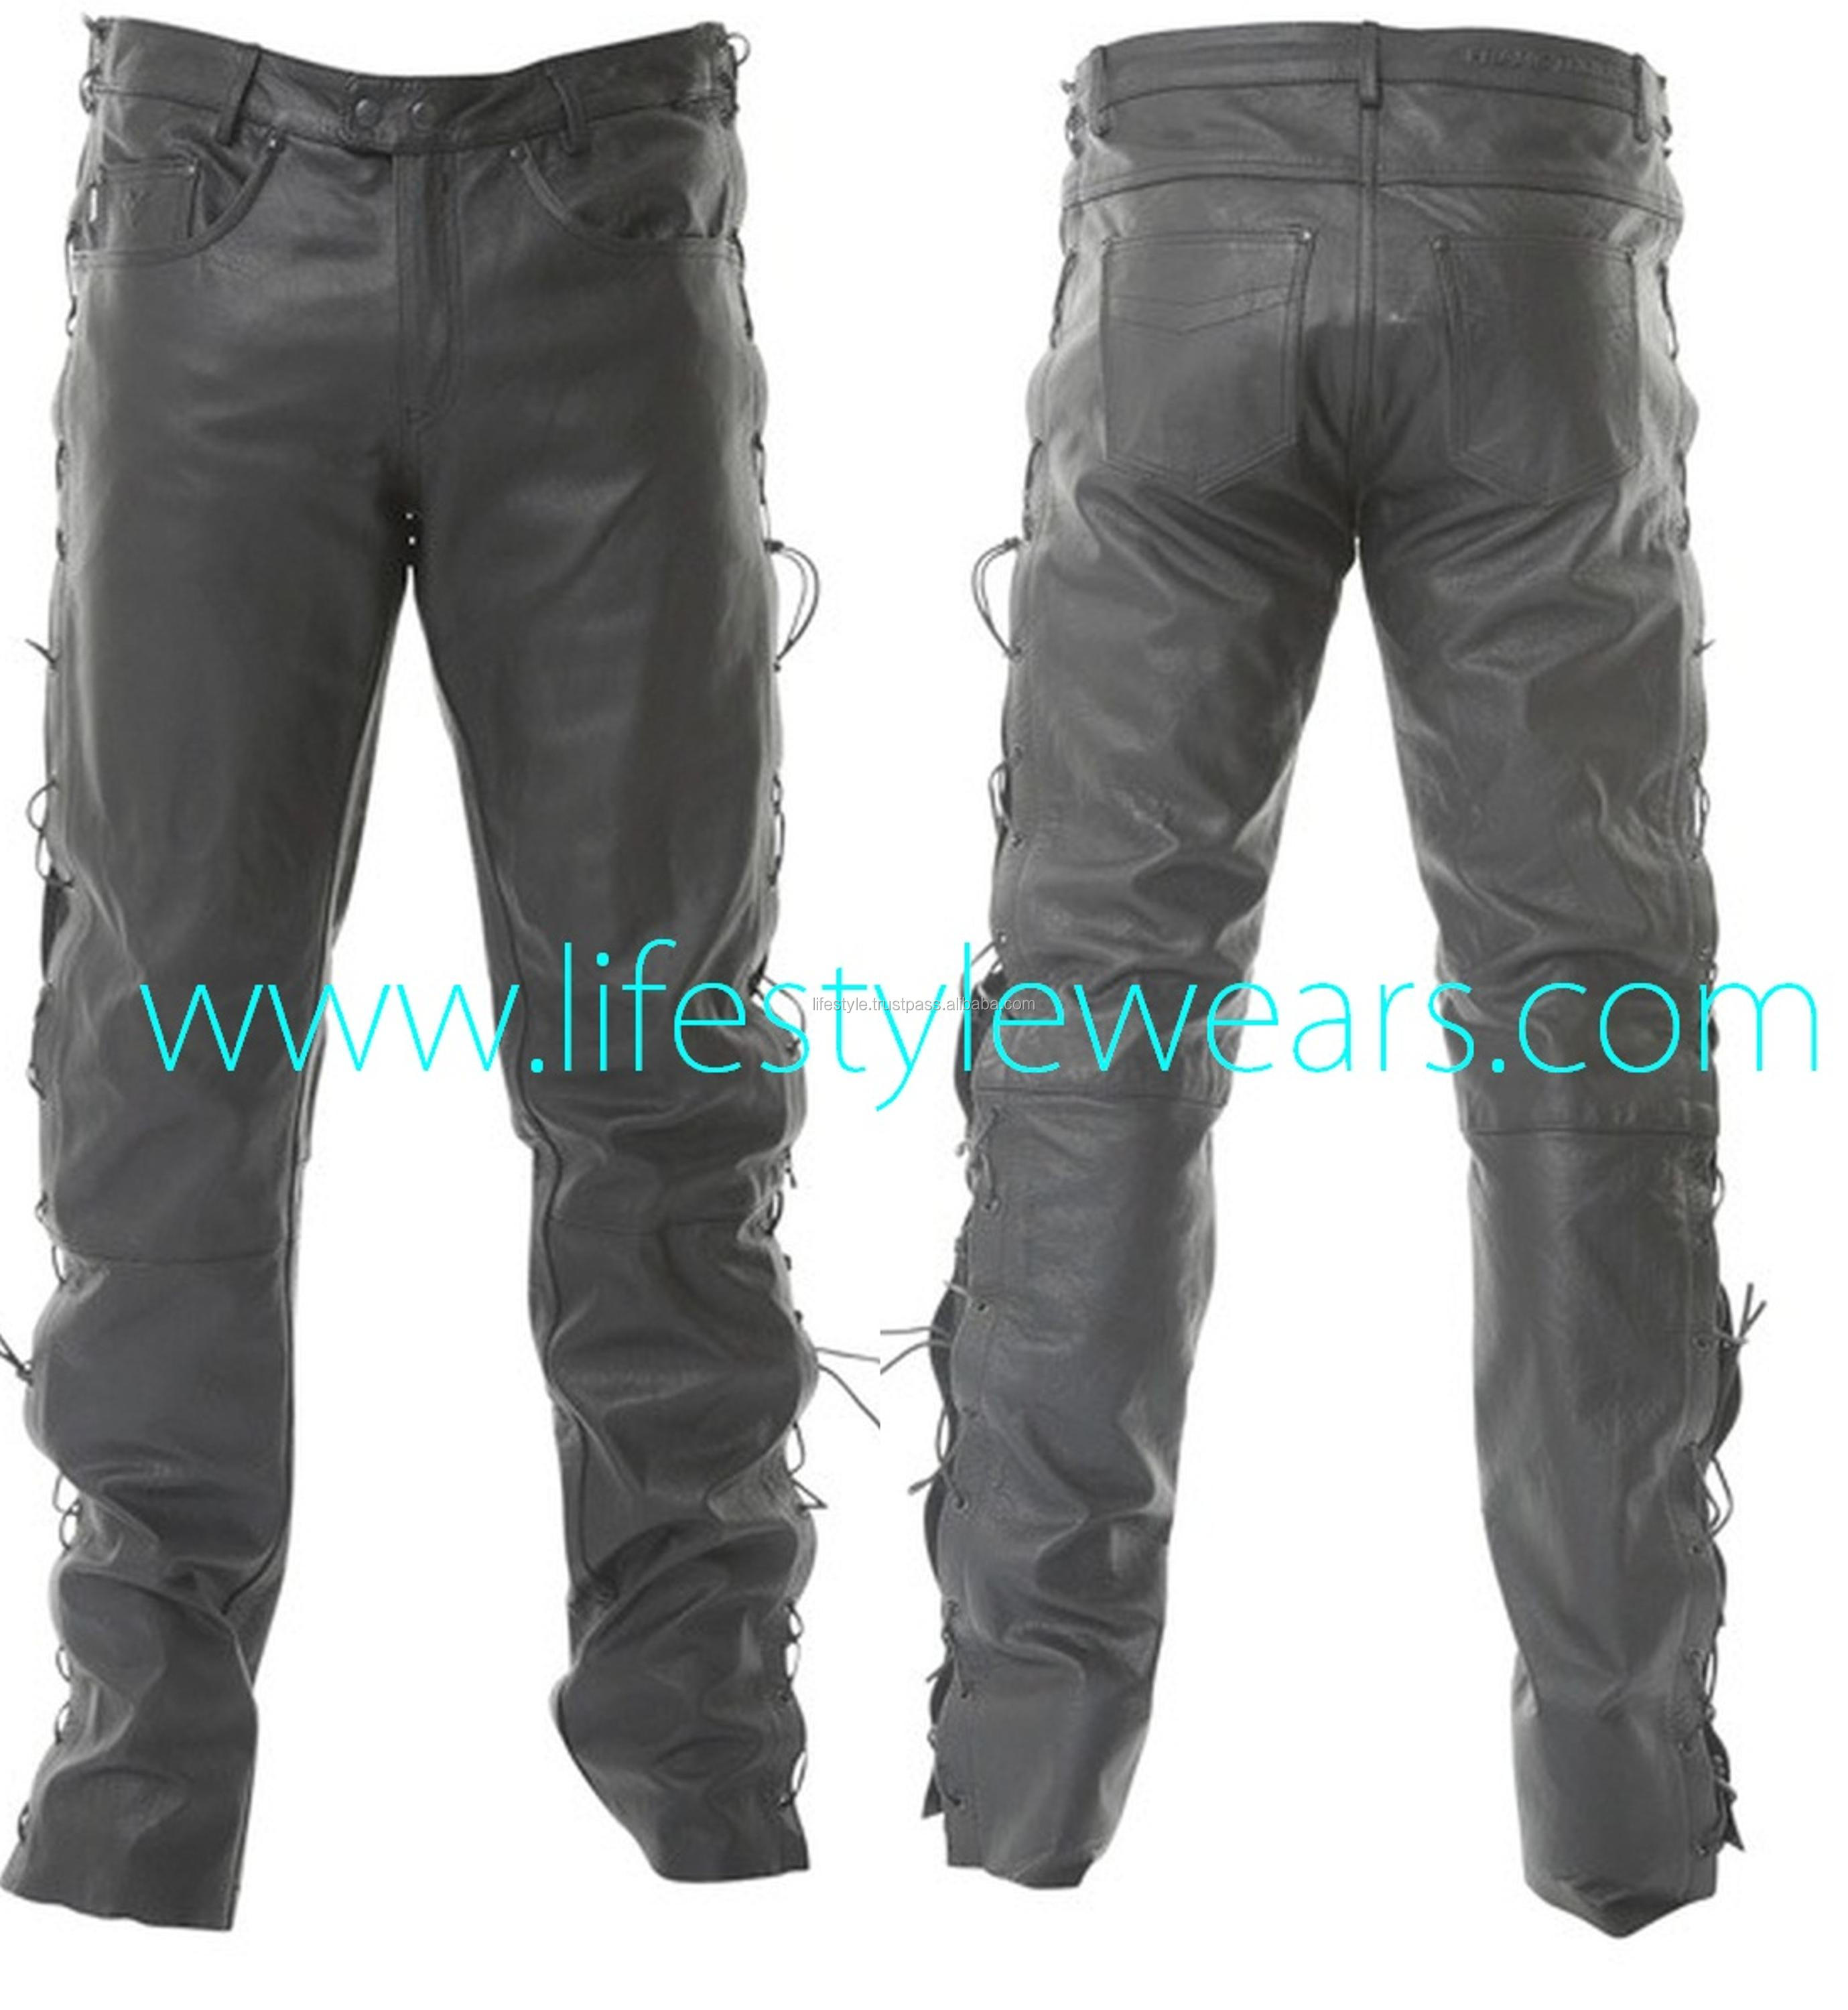 Heavy Fetish Leather Pants Vintage Leather Pants Genuine Leather Pants Mens Brown Leather Pants Gay Leather